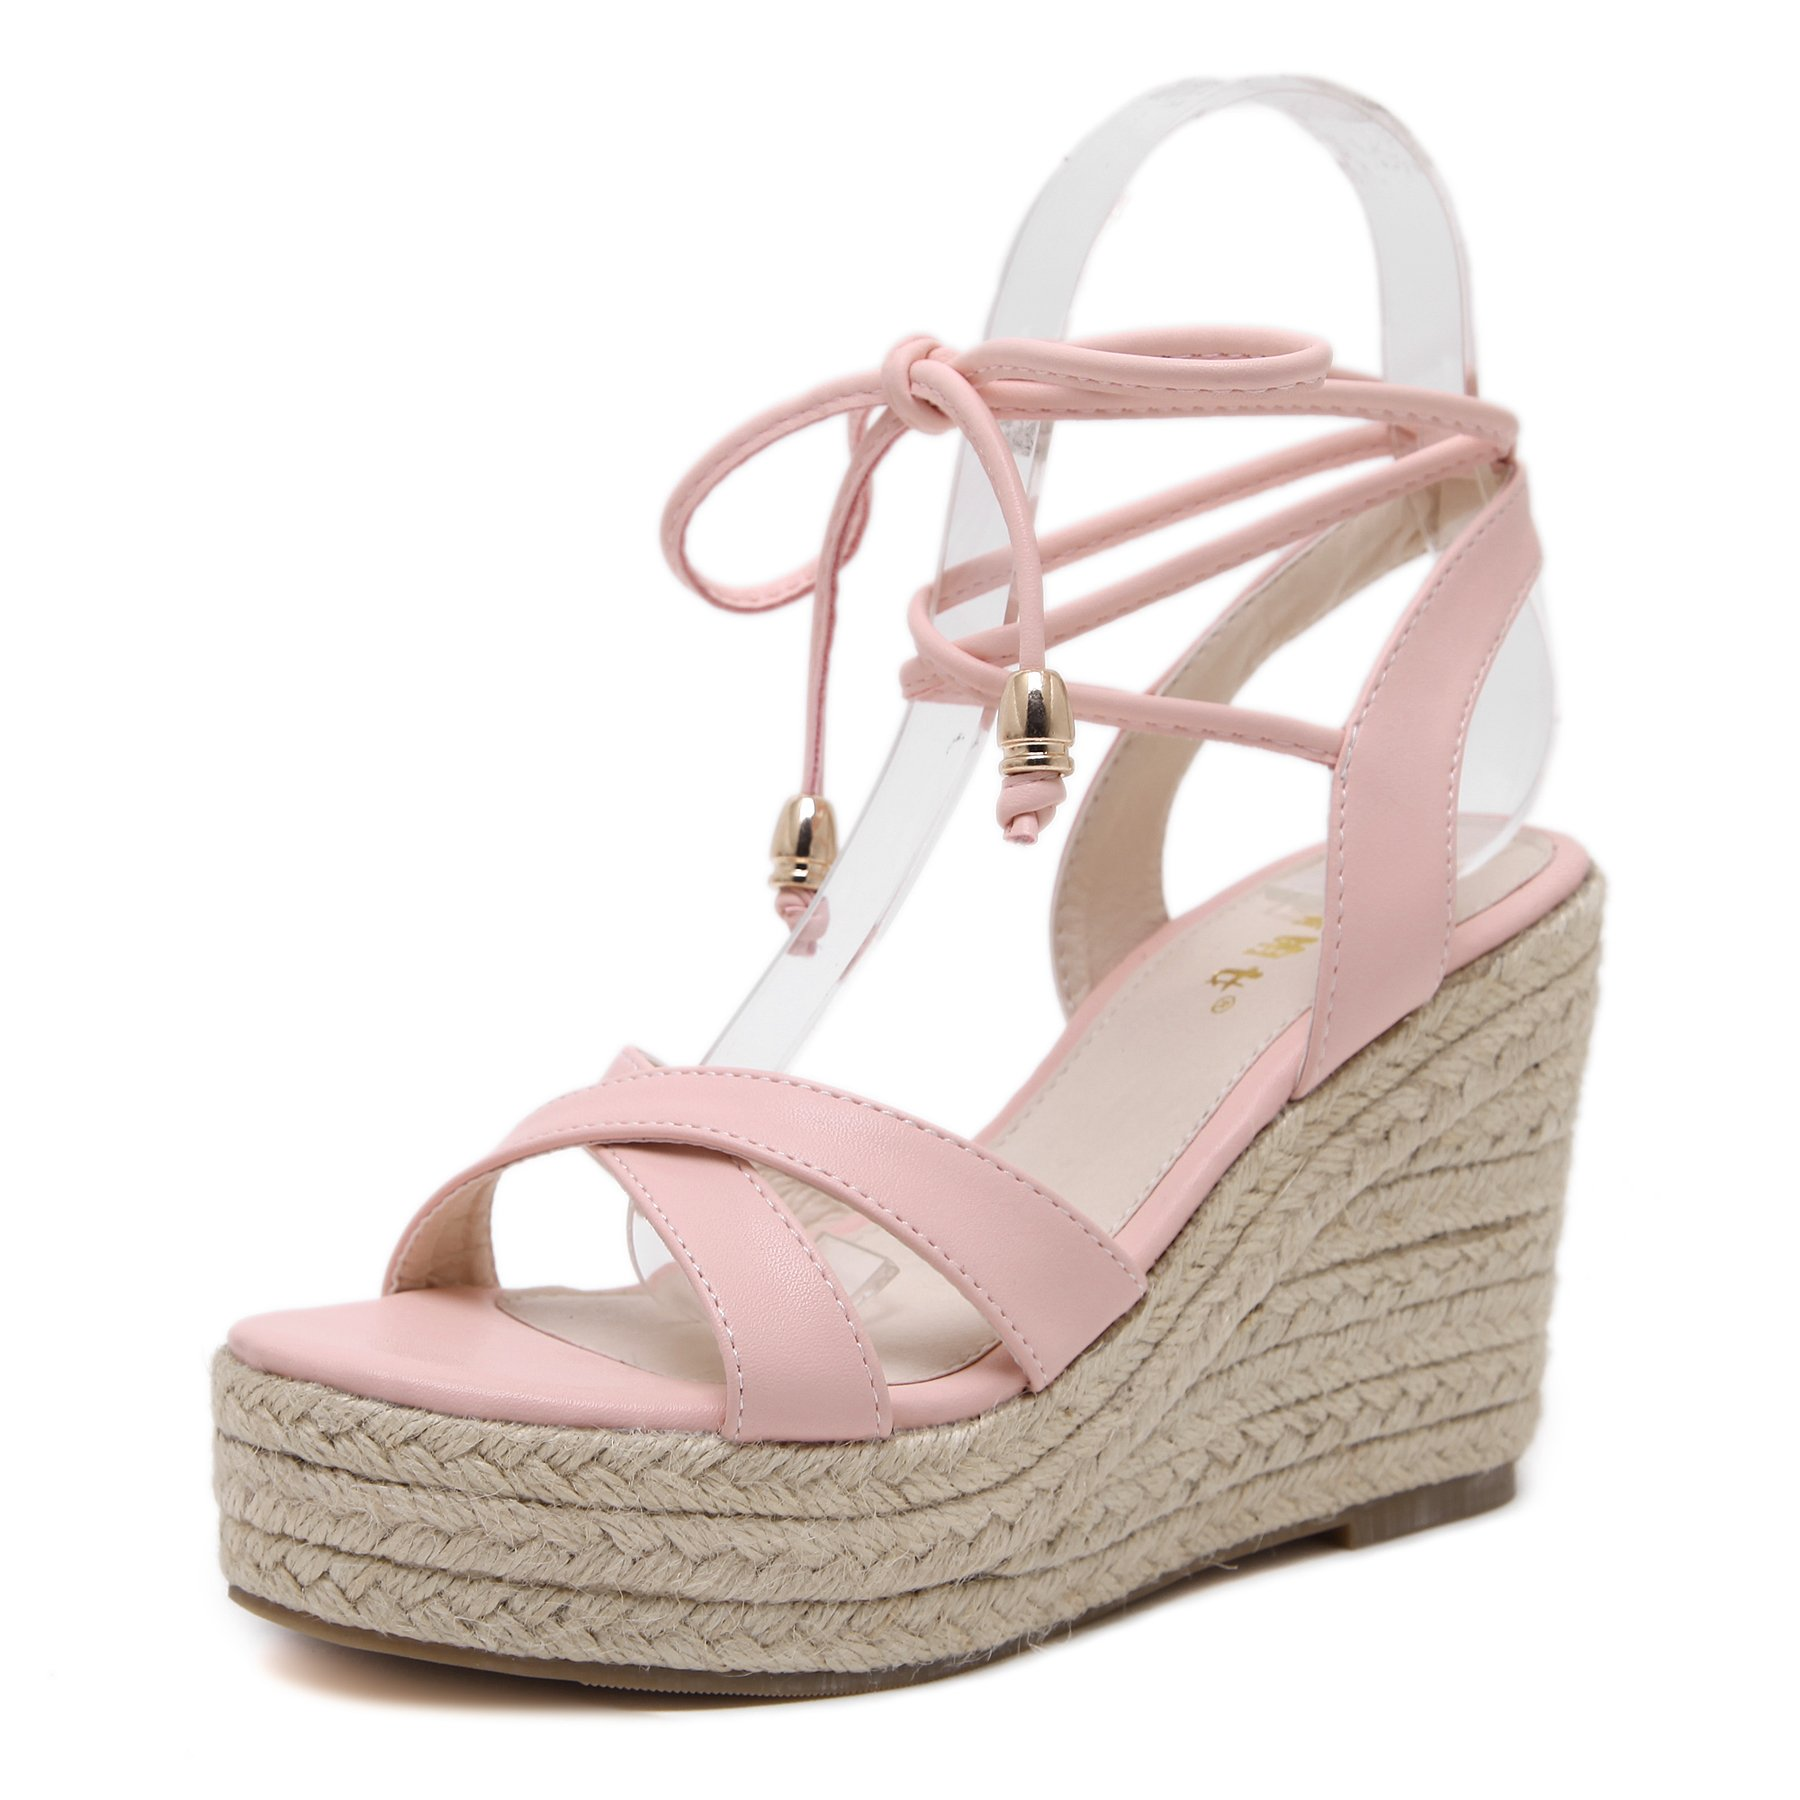 MAKEGSI Womens Jute-Rope Middle Wedge Heel Summer Shoes Flip Sandals Lace Up (7, Pink)